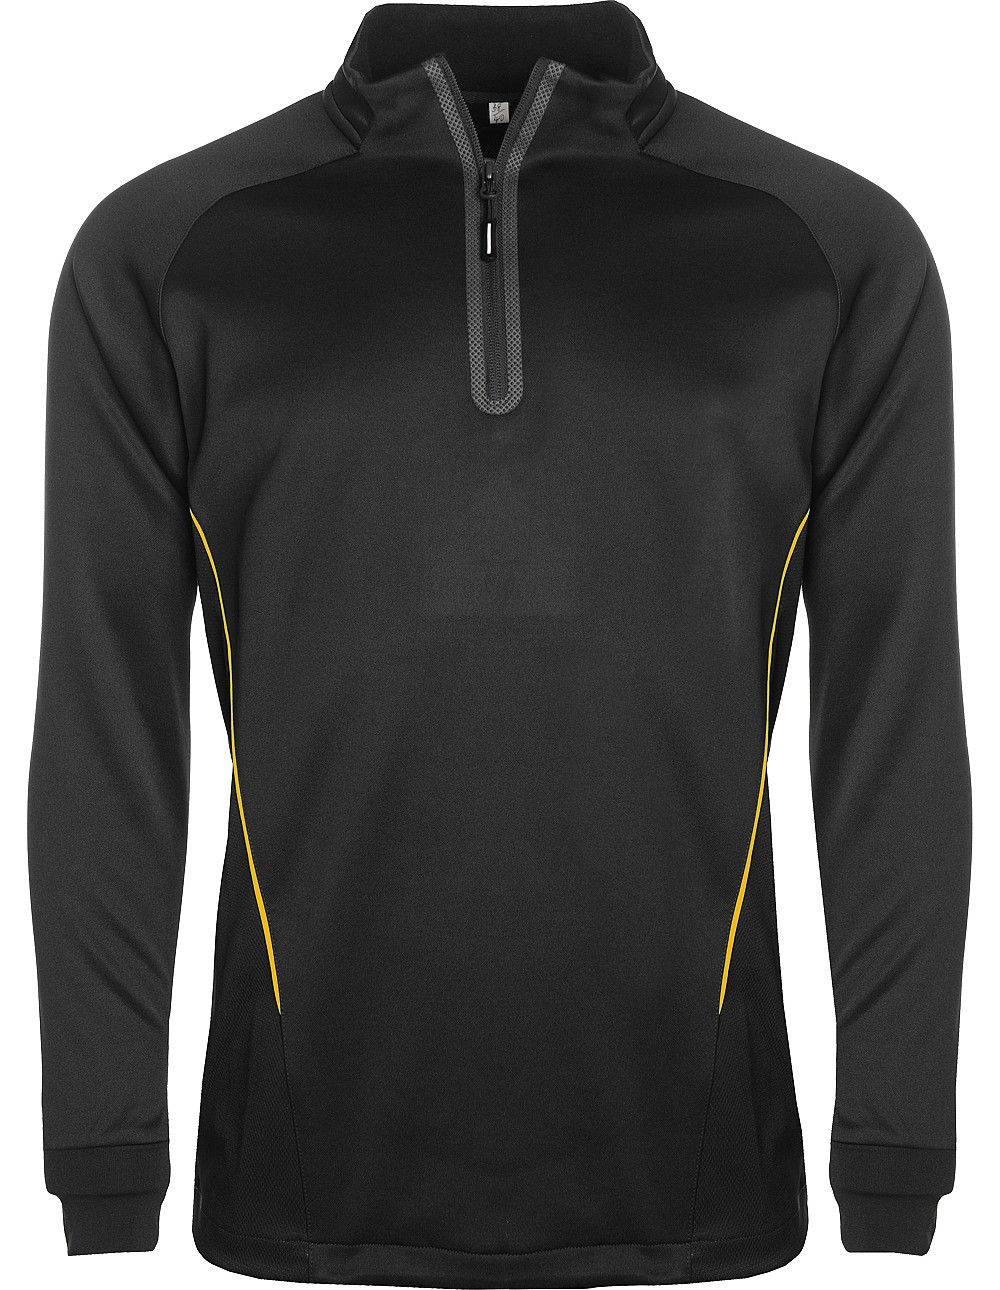 Qtr zip training top aptus